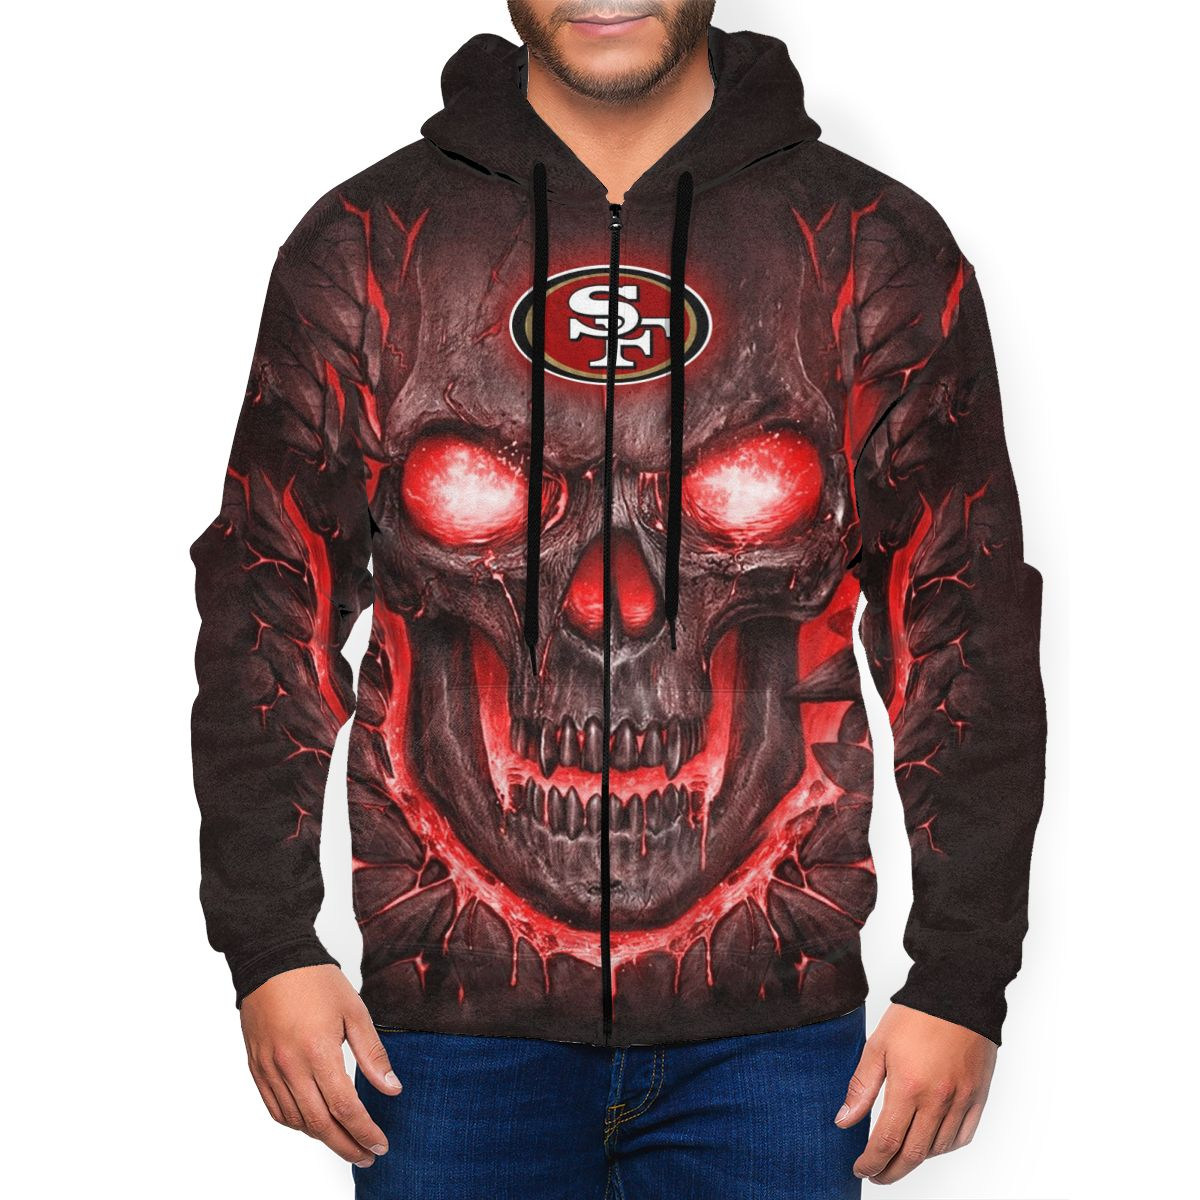 49ers Skull Lava Men's Zip Hooded Sweatshirt